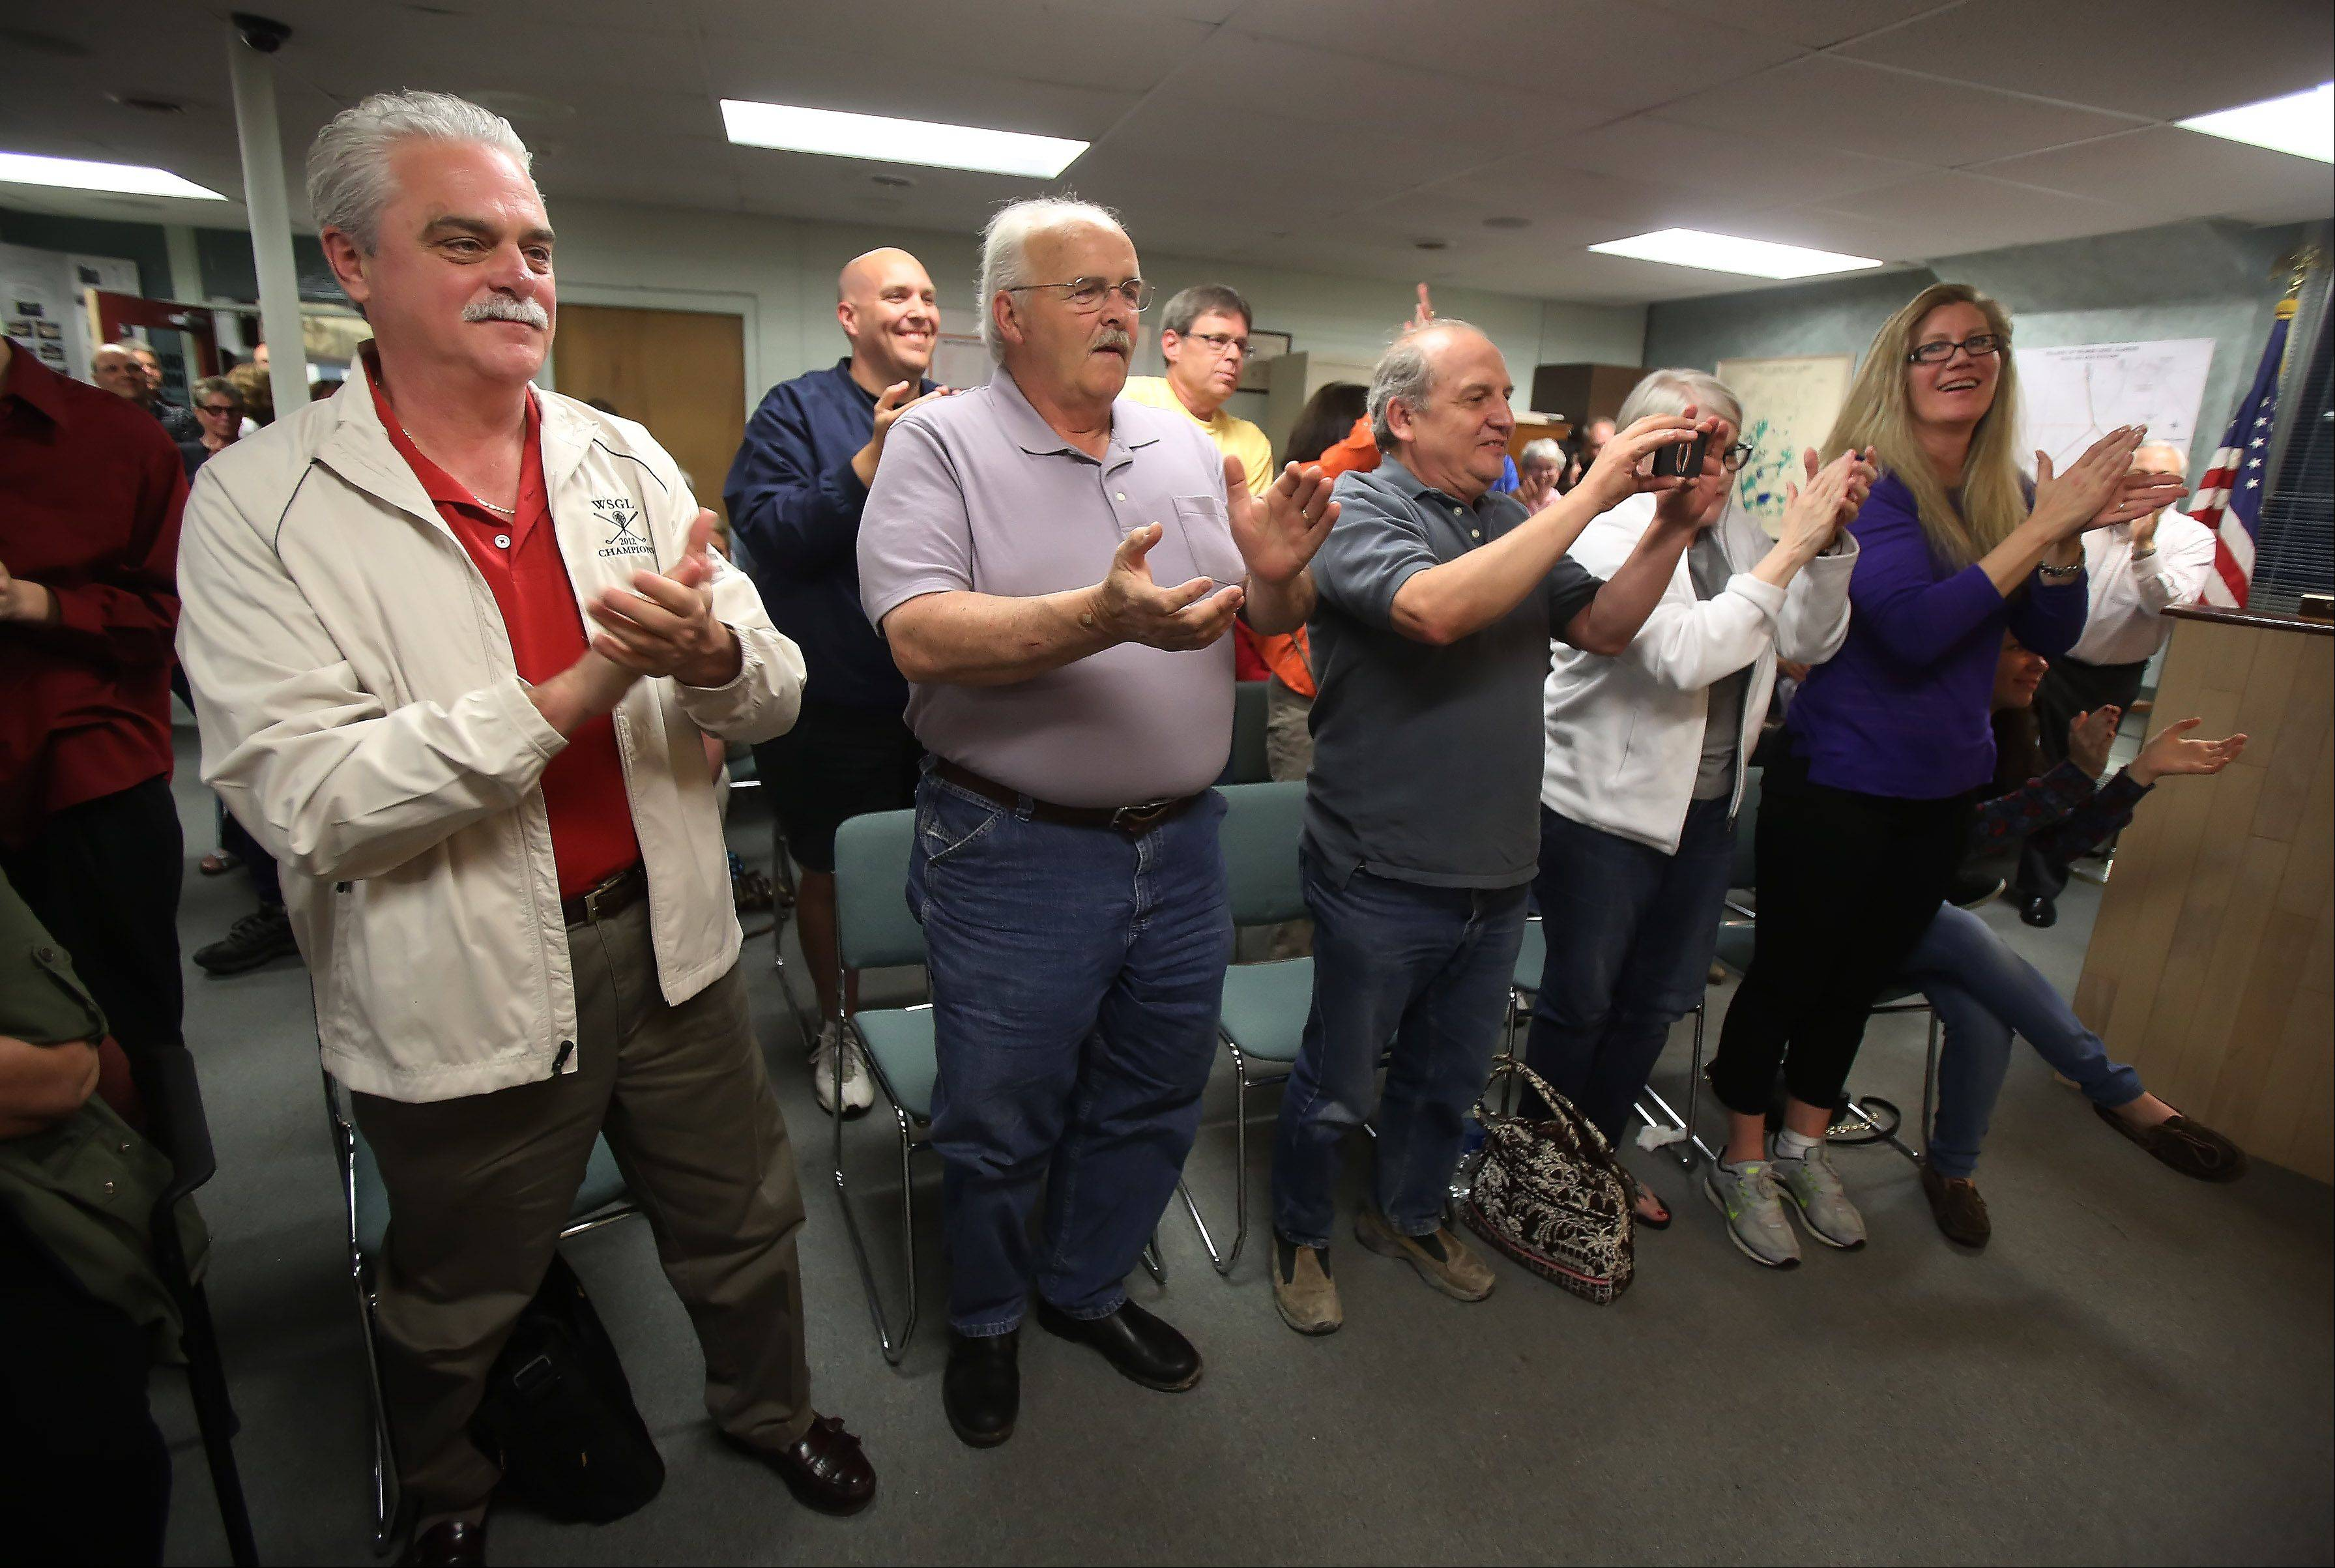 Wayne Schnell, left, and other supporters of Mayor Charles Amrich celebrated his swearing-in last month.